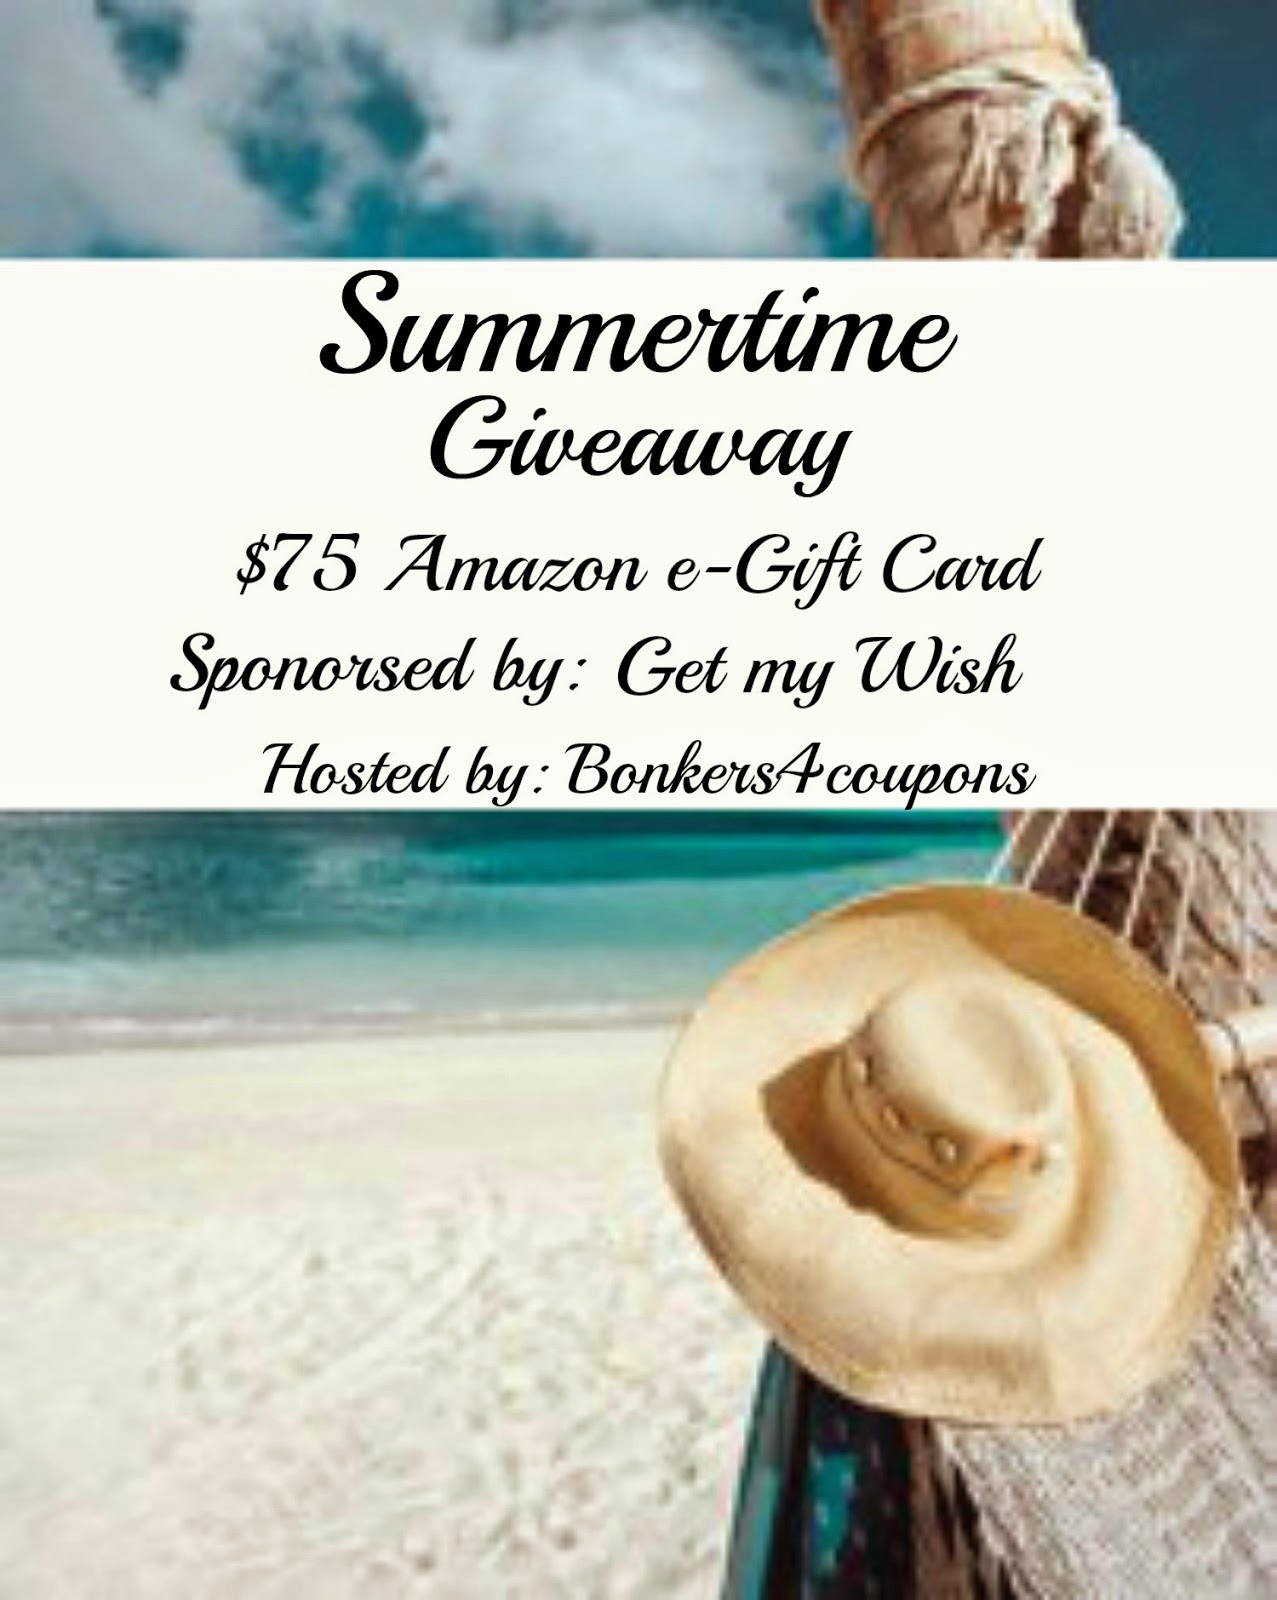 Summertime Get My Wish Giveaway